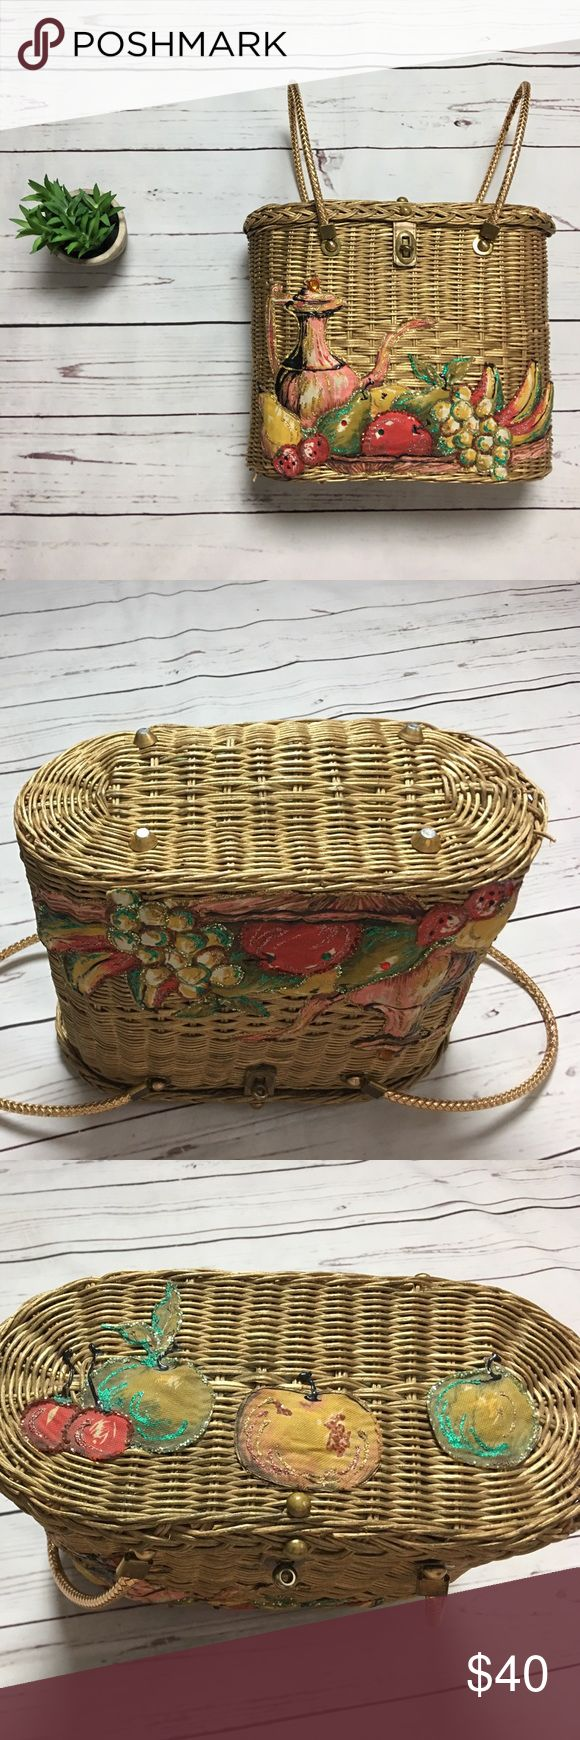 """Vintage 60's Midas Miami Fruit Wicker Basket Purse Inside has a few tiny stains and a small hole. Also, the bottom of purse is not leveled, meaning there is a bend so when laying the purse upright it tilts (See pictures). Measurements: Length-10"""" and width-12"""" Midas of Miami Bags Totes"""